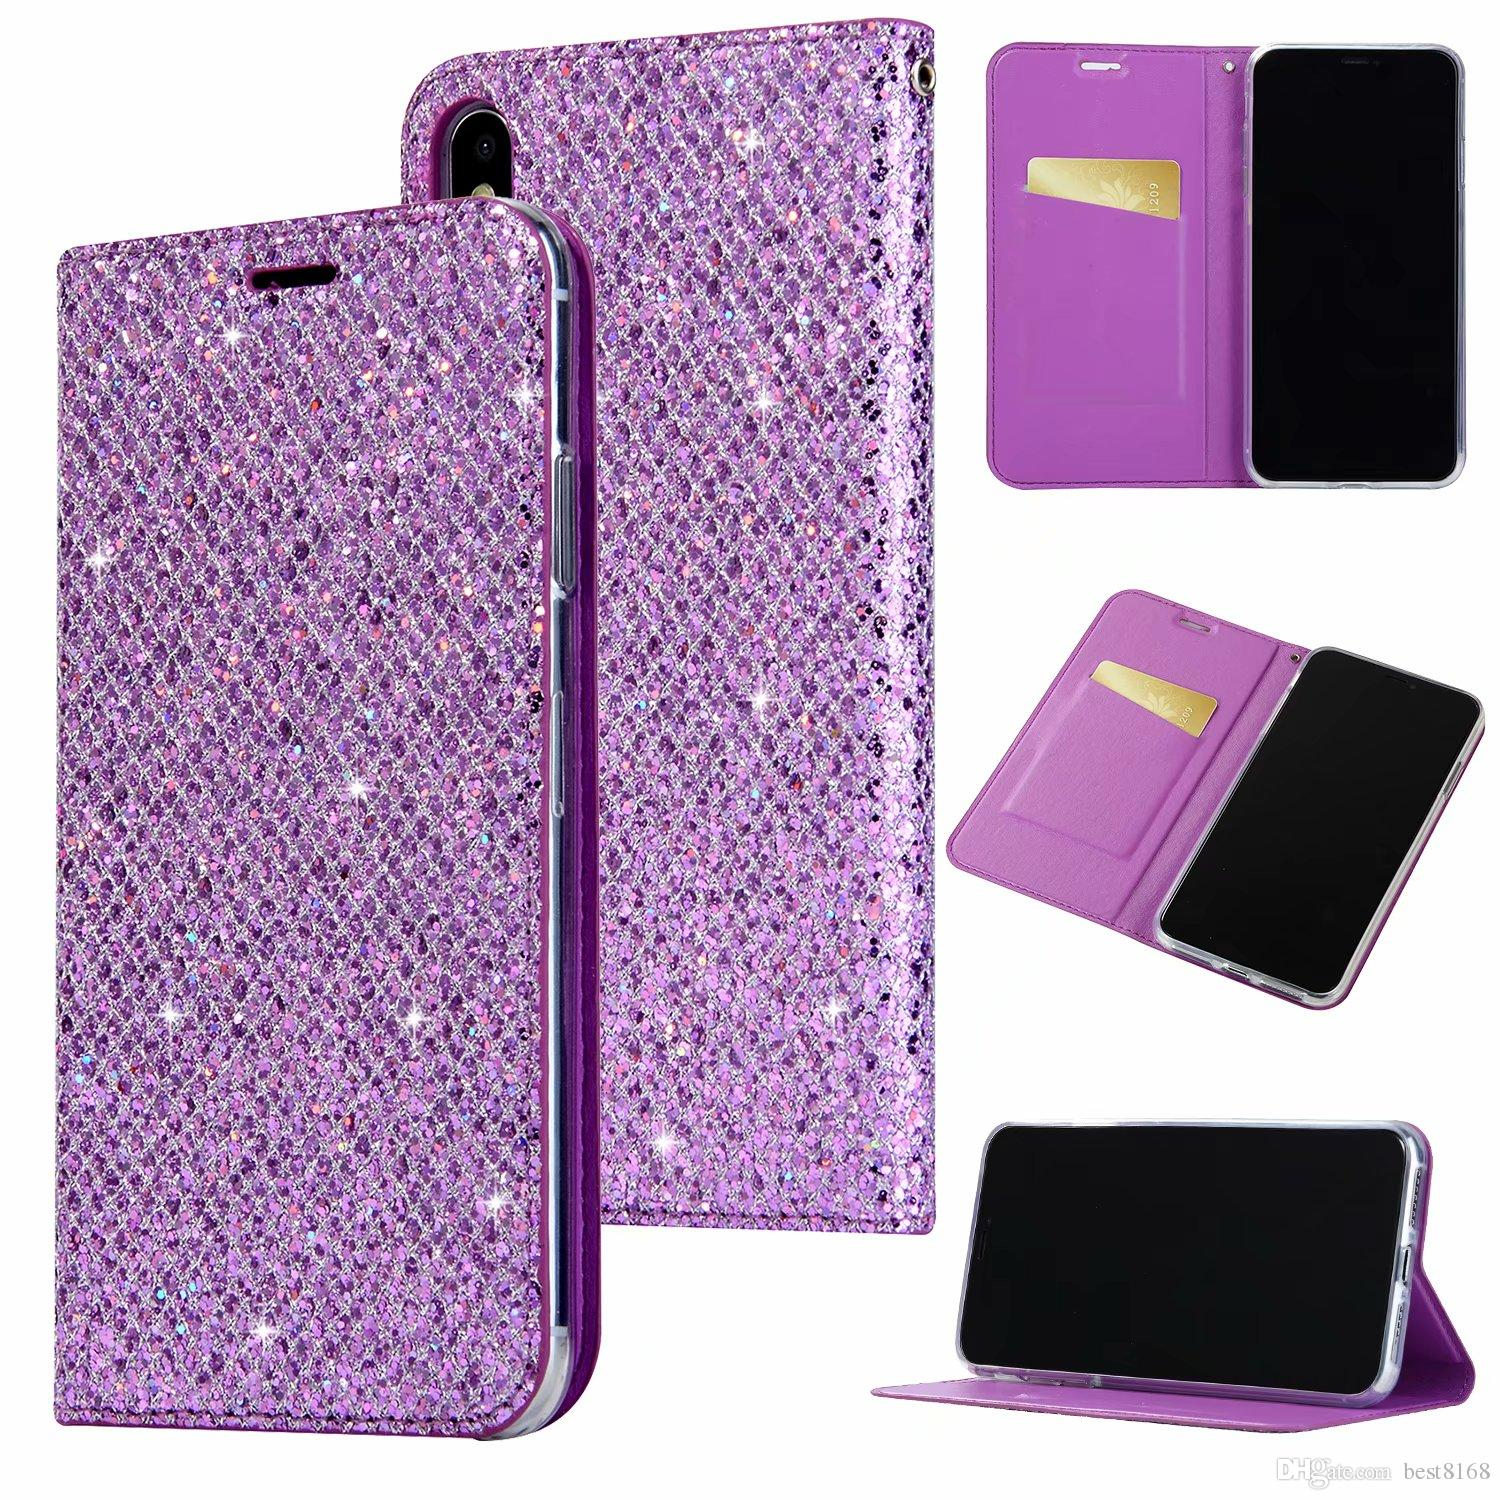 54b010f7d1c80 Bling Sparkle Leather Wallet Case For Iphone XR XS MAX X 10 8 7 6 SE 5 5S  Galaxy Note 9 8 S9 S8 Glitter Magnetic Closure Suck Flip Cover Cell Phone  ...